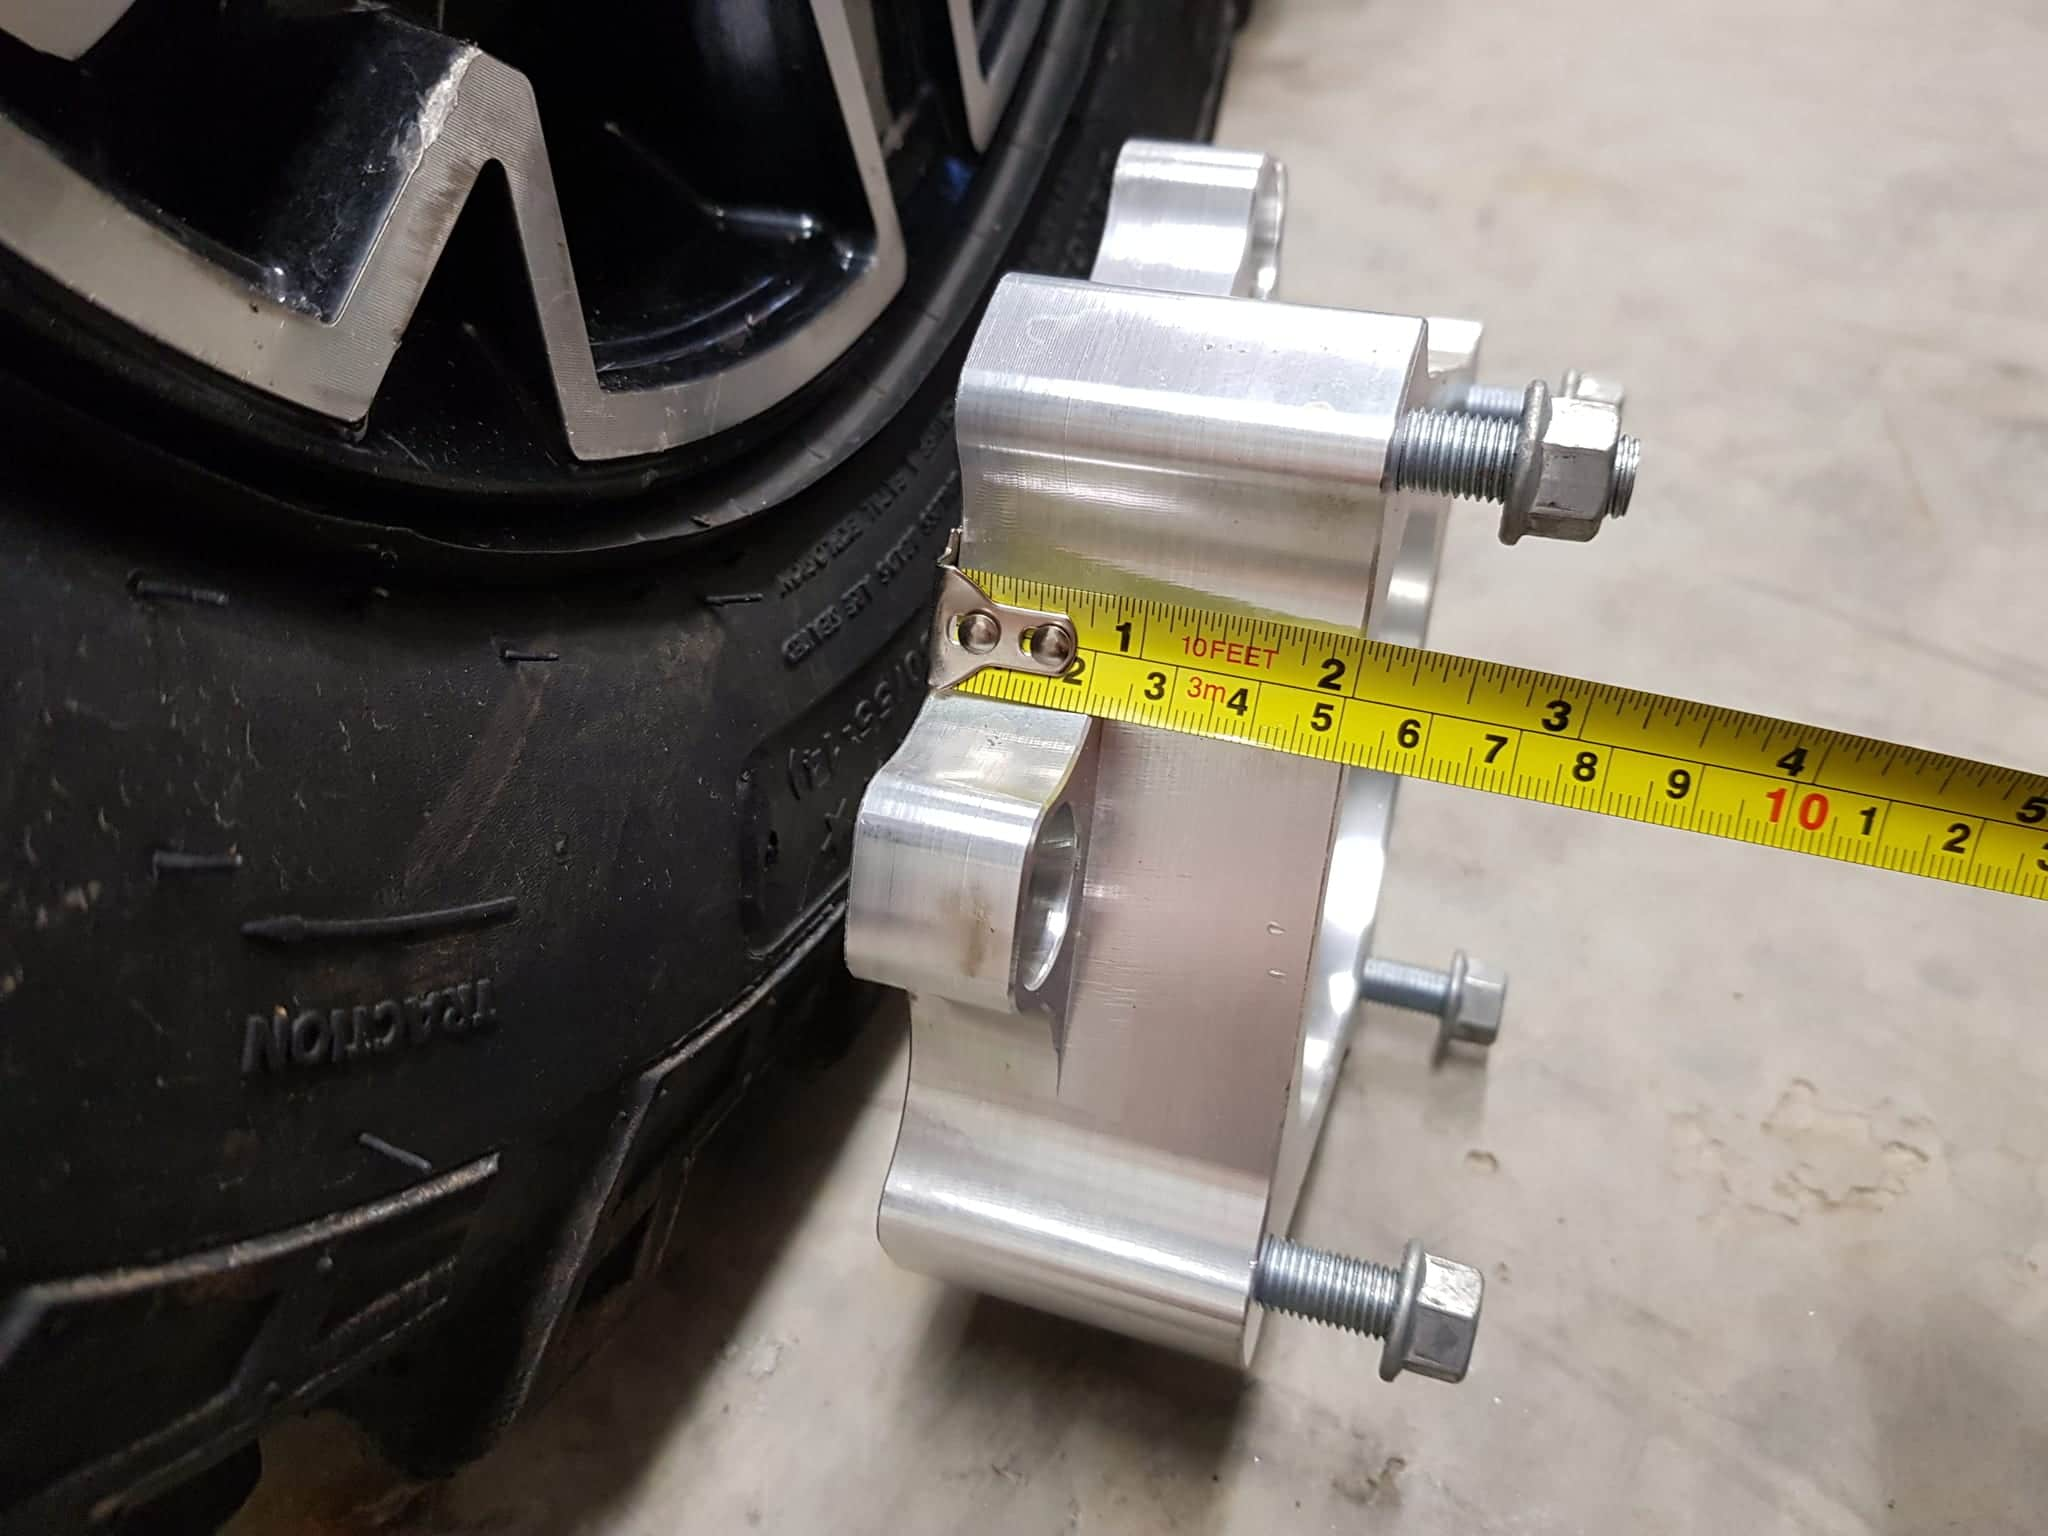 Are ATV Wheel Spacers Good or Bad (Pros/Cons)? Why Use Them?